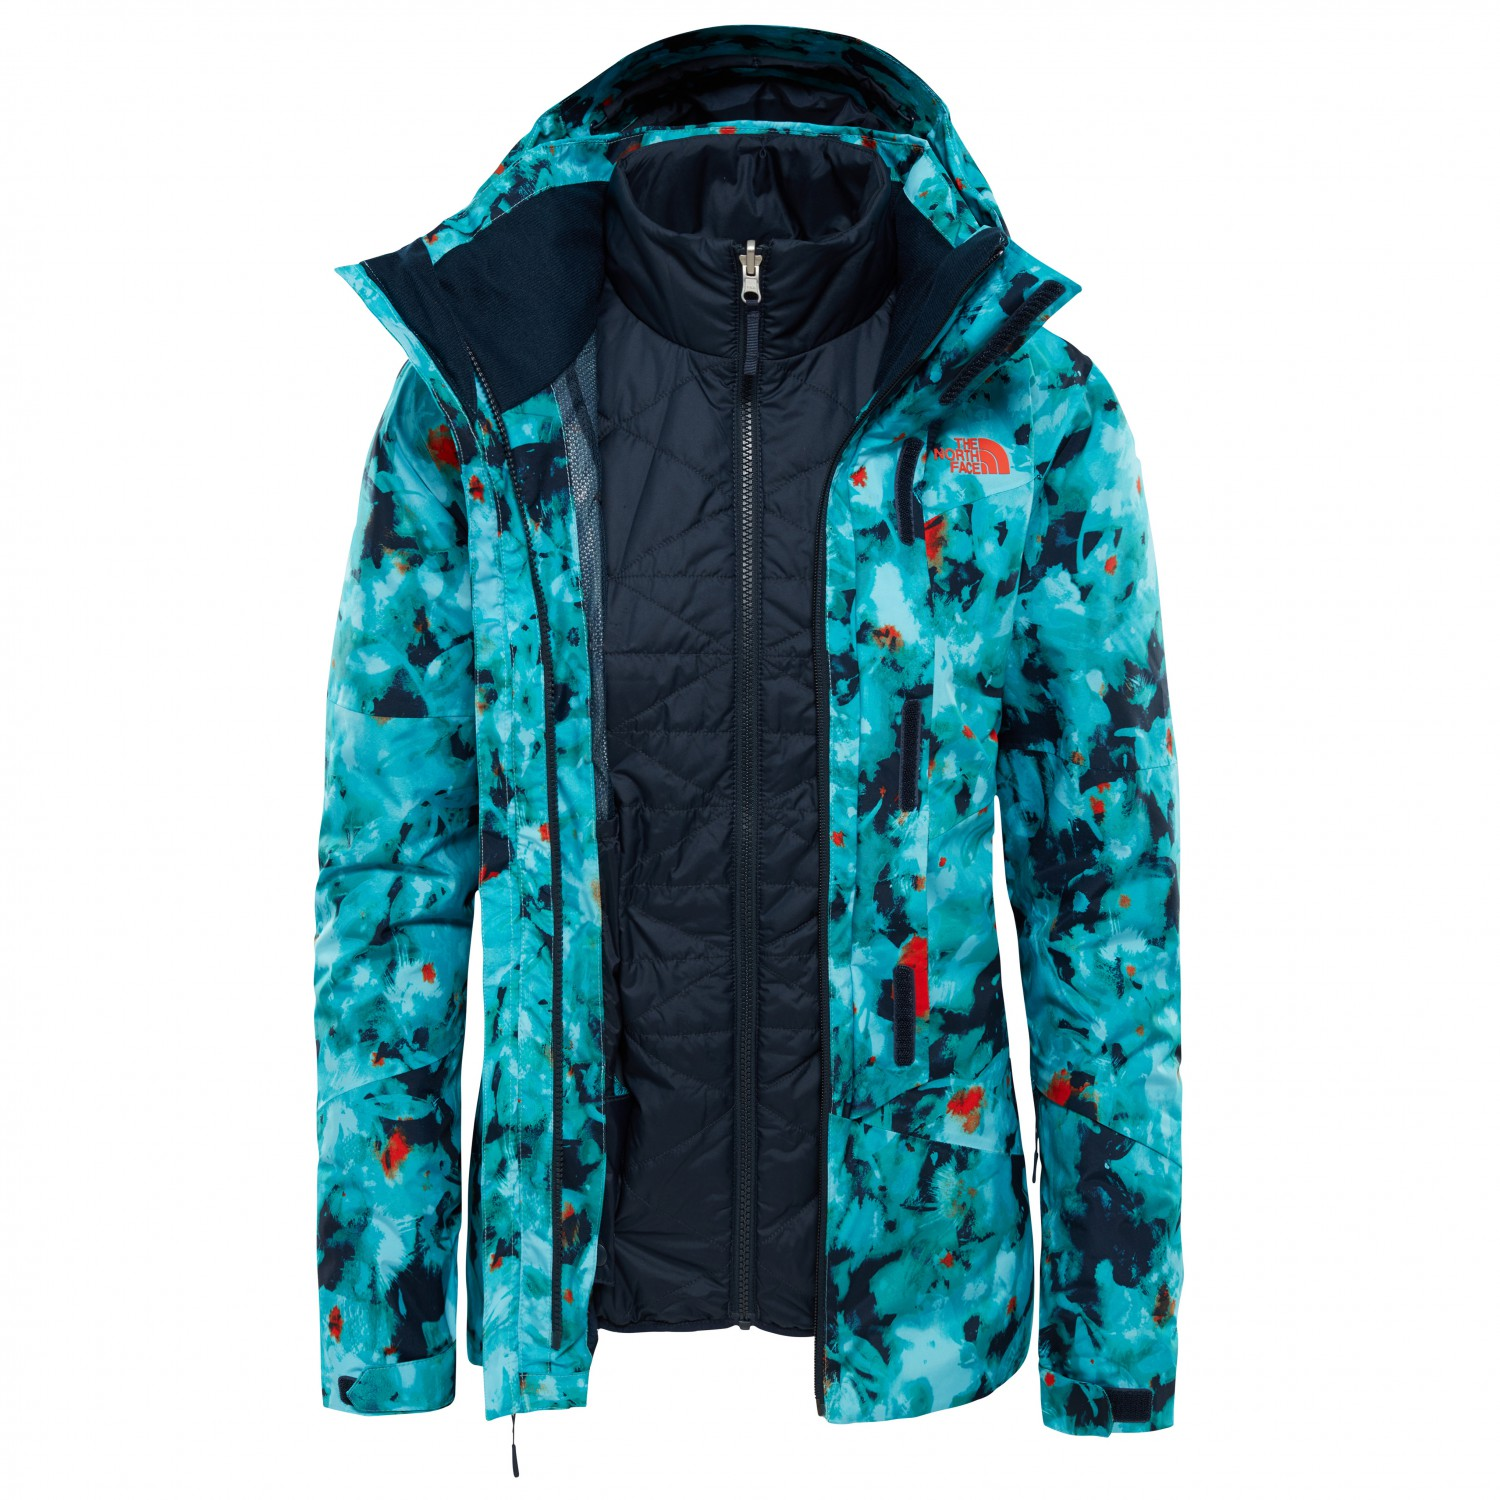 340f71f6f The North Face Garner Triclimate Jacket - 3-In-1 Jacket Women's ...